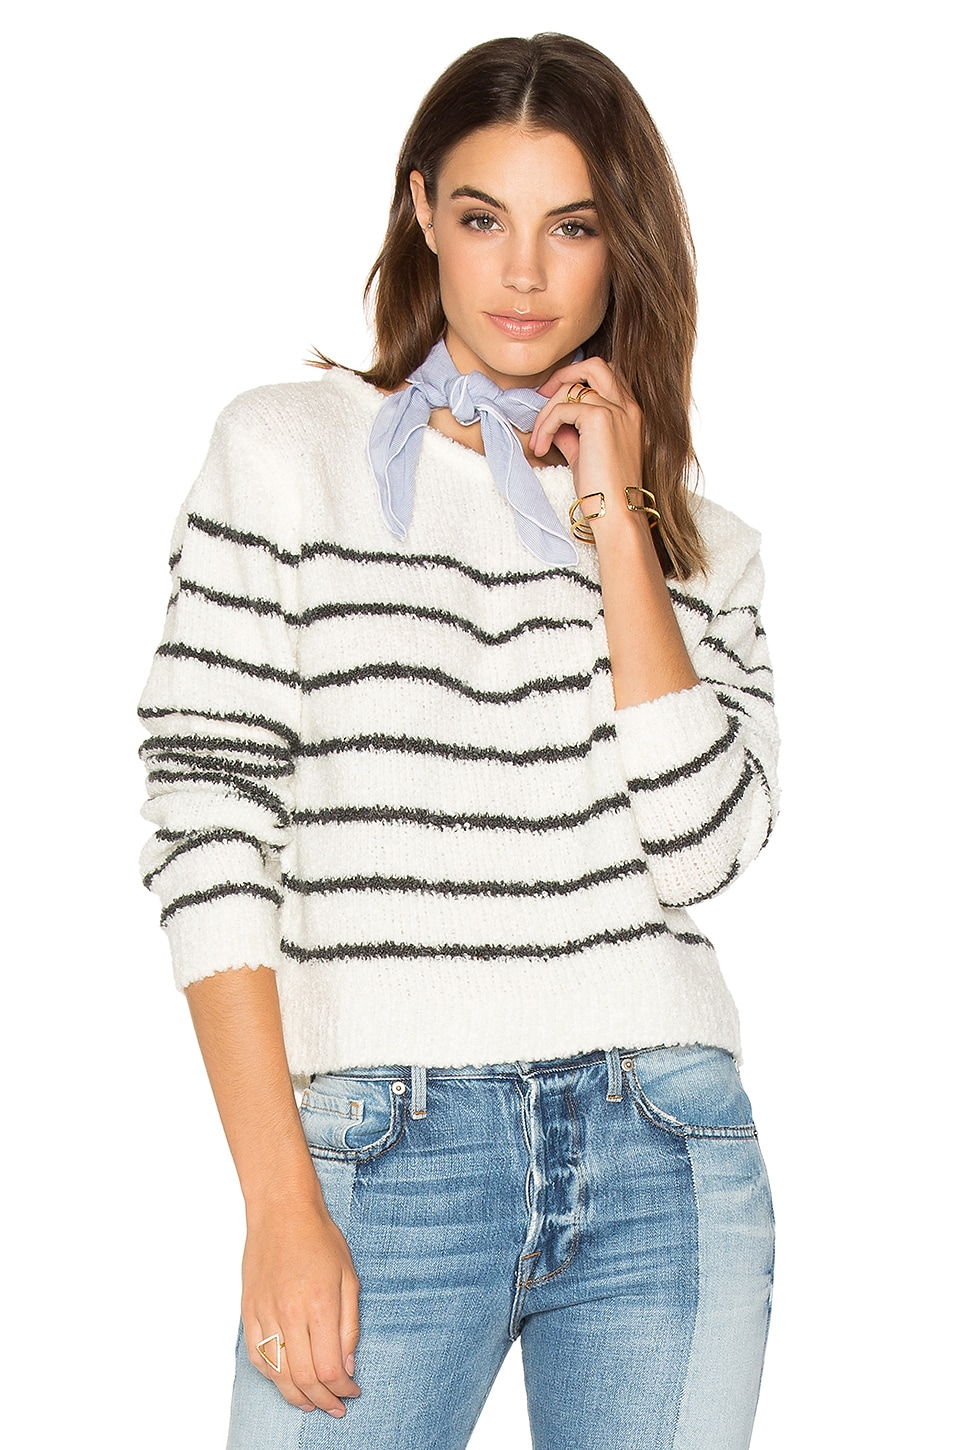 Tula Striped Sweater by Sincerely Jules